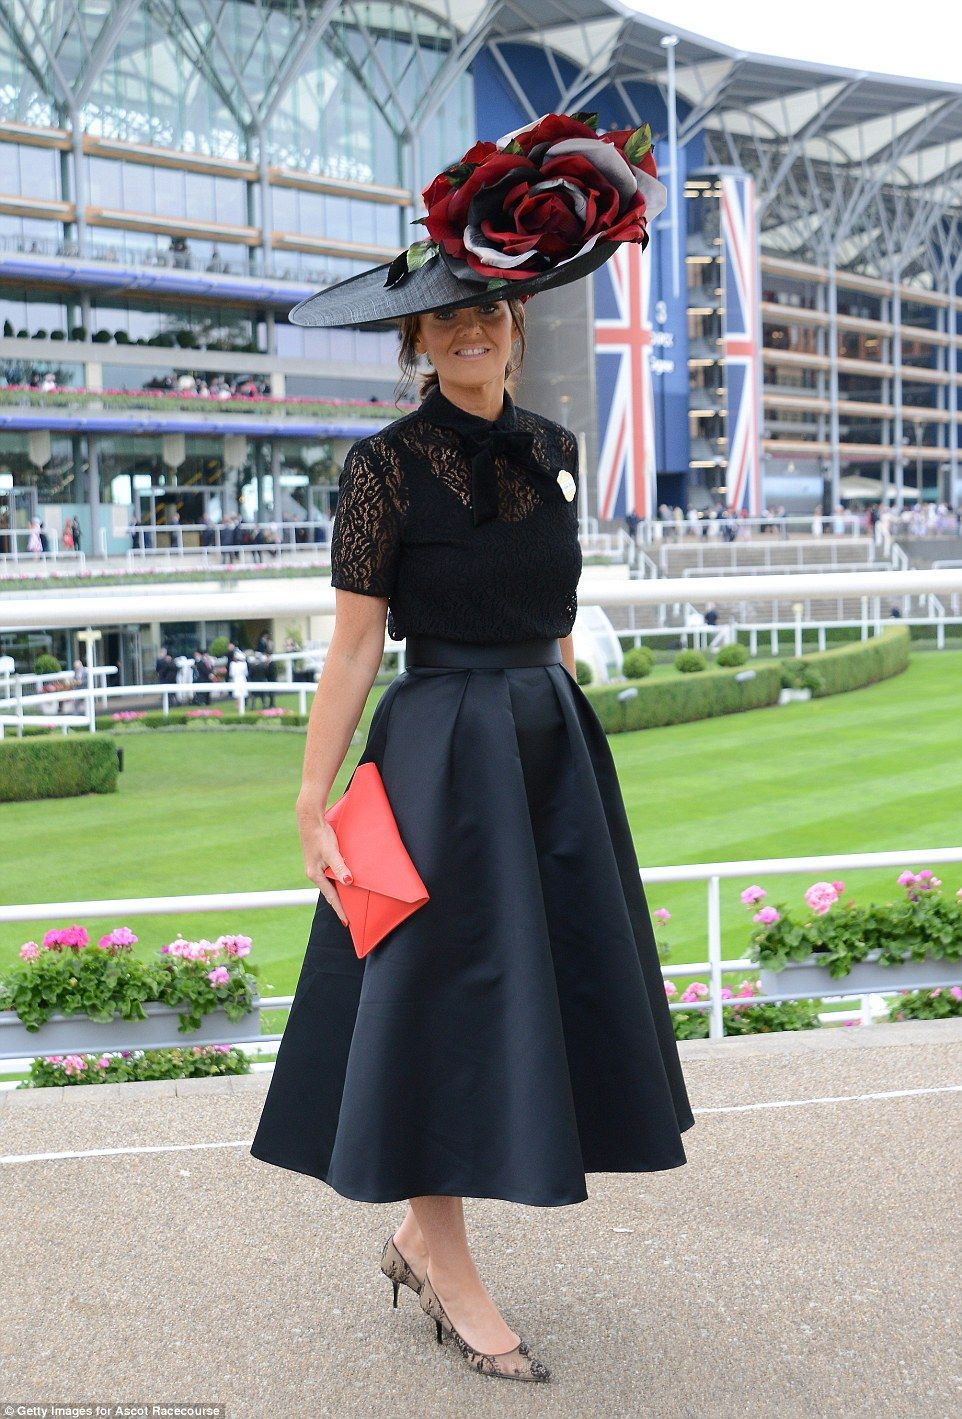 Black dress with touch of red - A Woman S Understated Outfit Of A Black Midi Skirt And Lace Top Got The High Fashion